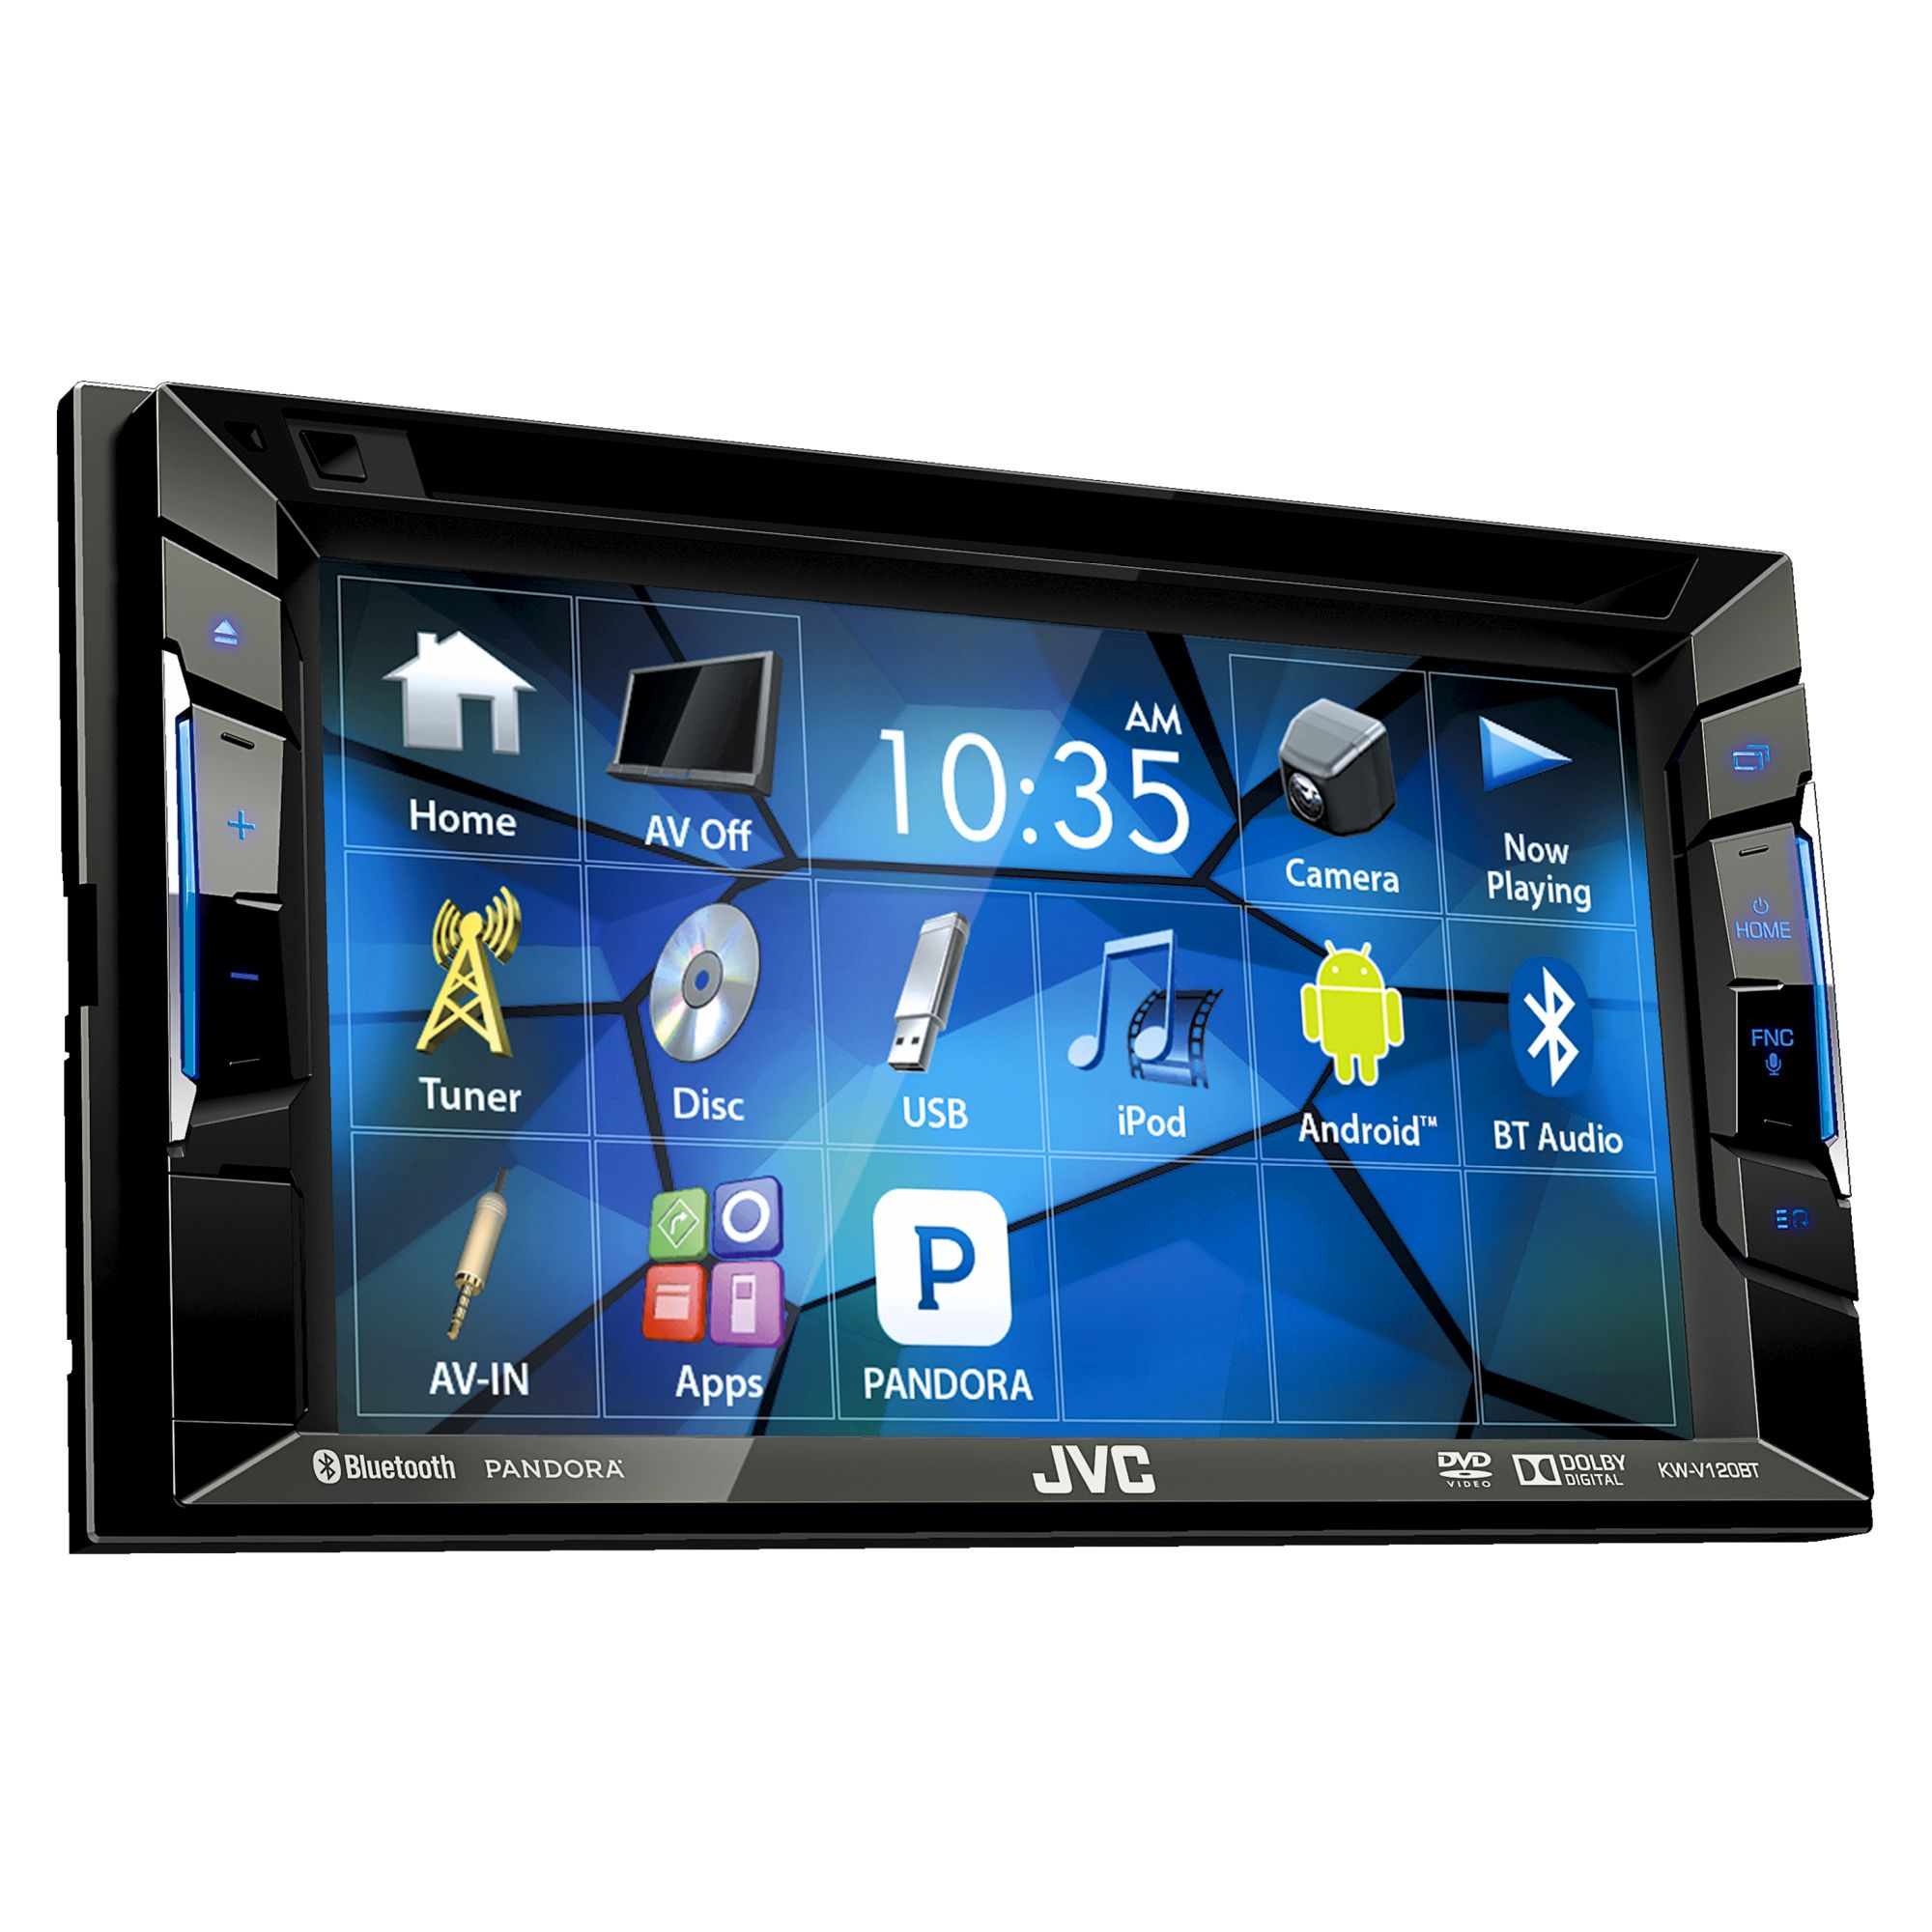 $169.45 - JVC KW-V120BT Double DIN Bluetooth In-Dash DVD/CD/AM/FM Car Stereo